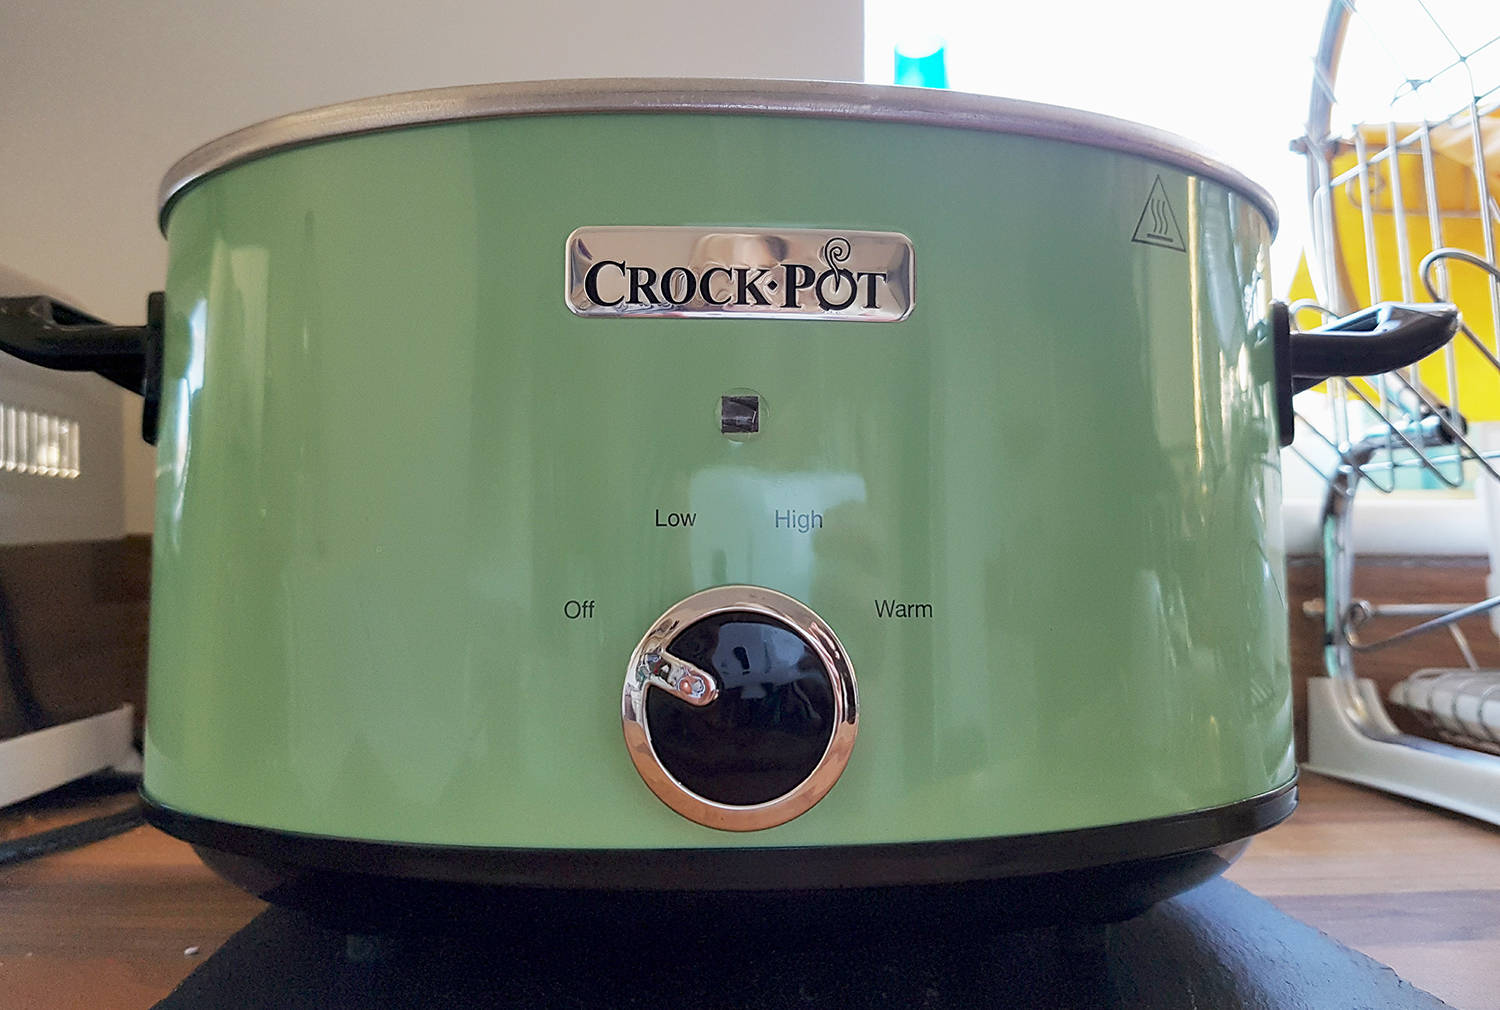 Crock Pot – an end to ready meals?